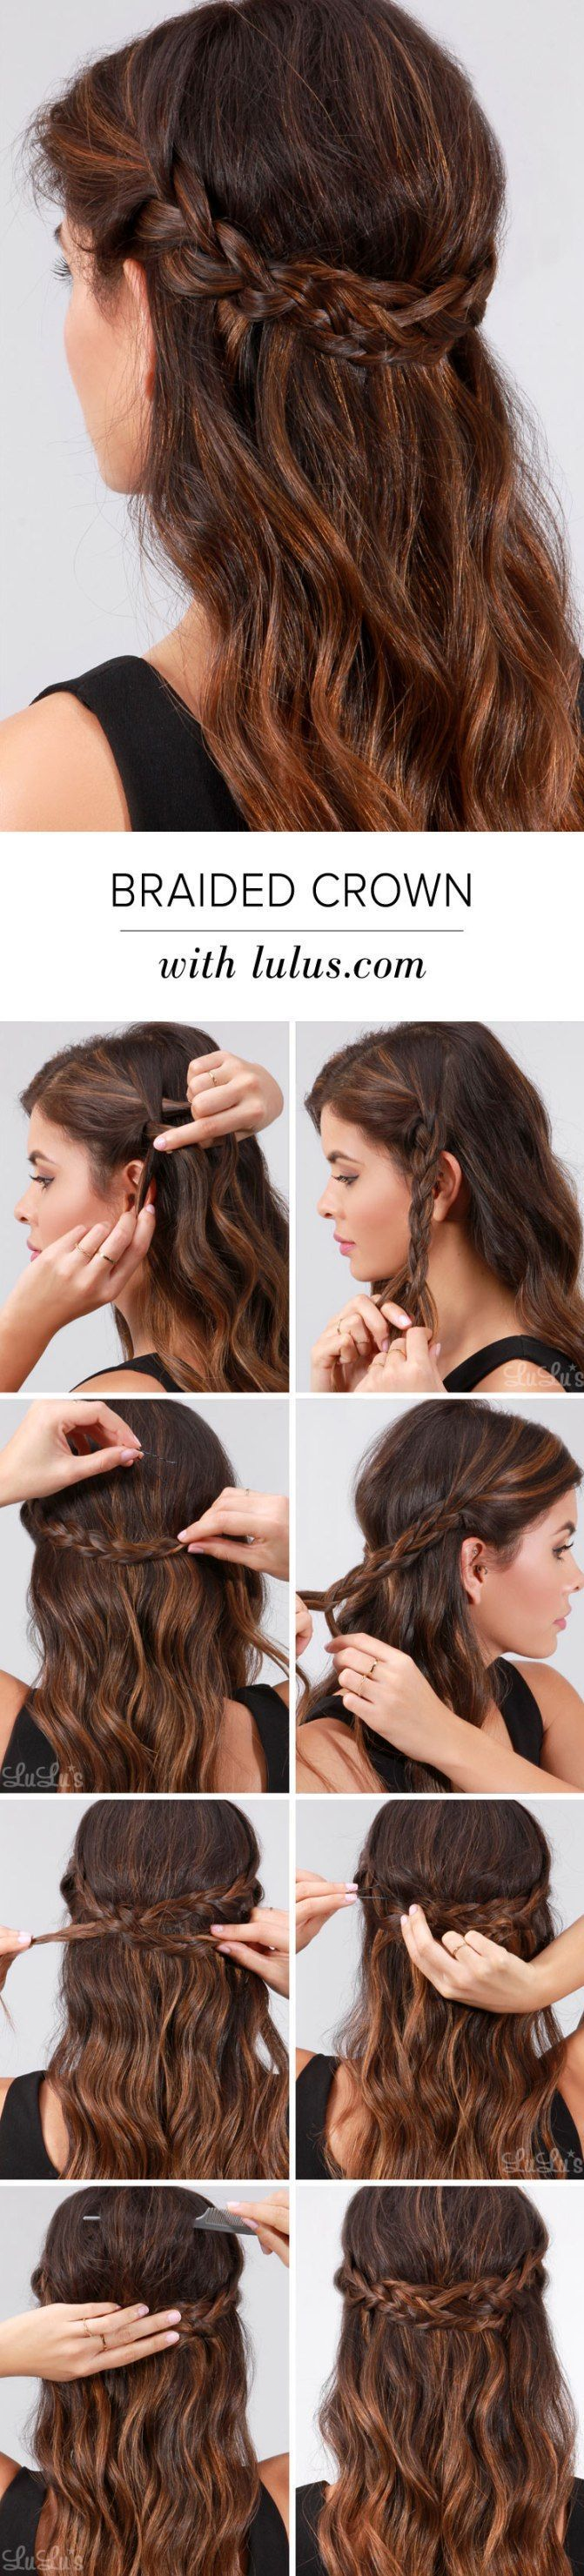 8 Easy Braids That Will Fix Any Bad Hair Day - DIYbunker #hairtutorials